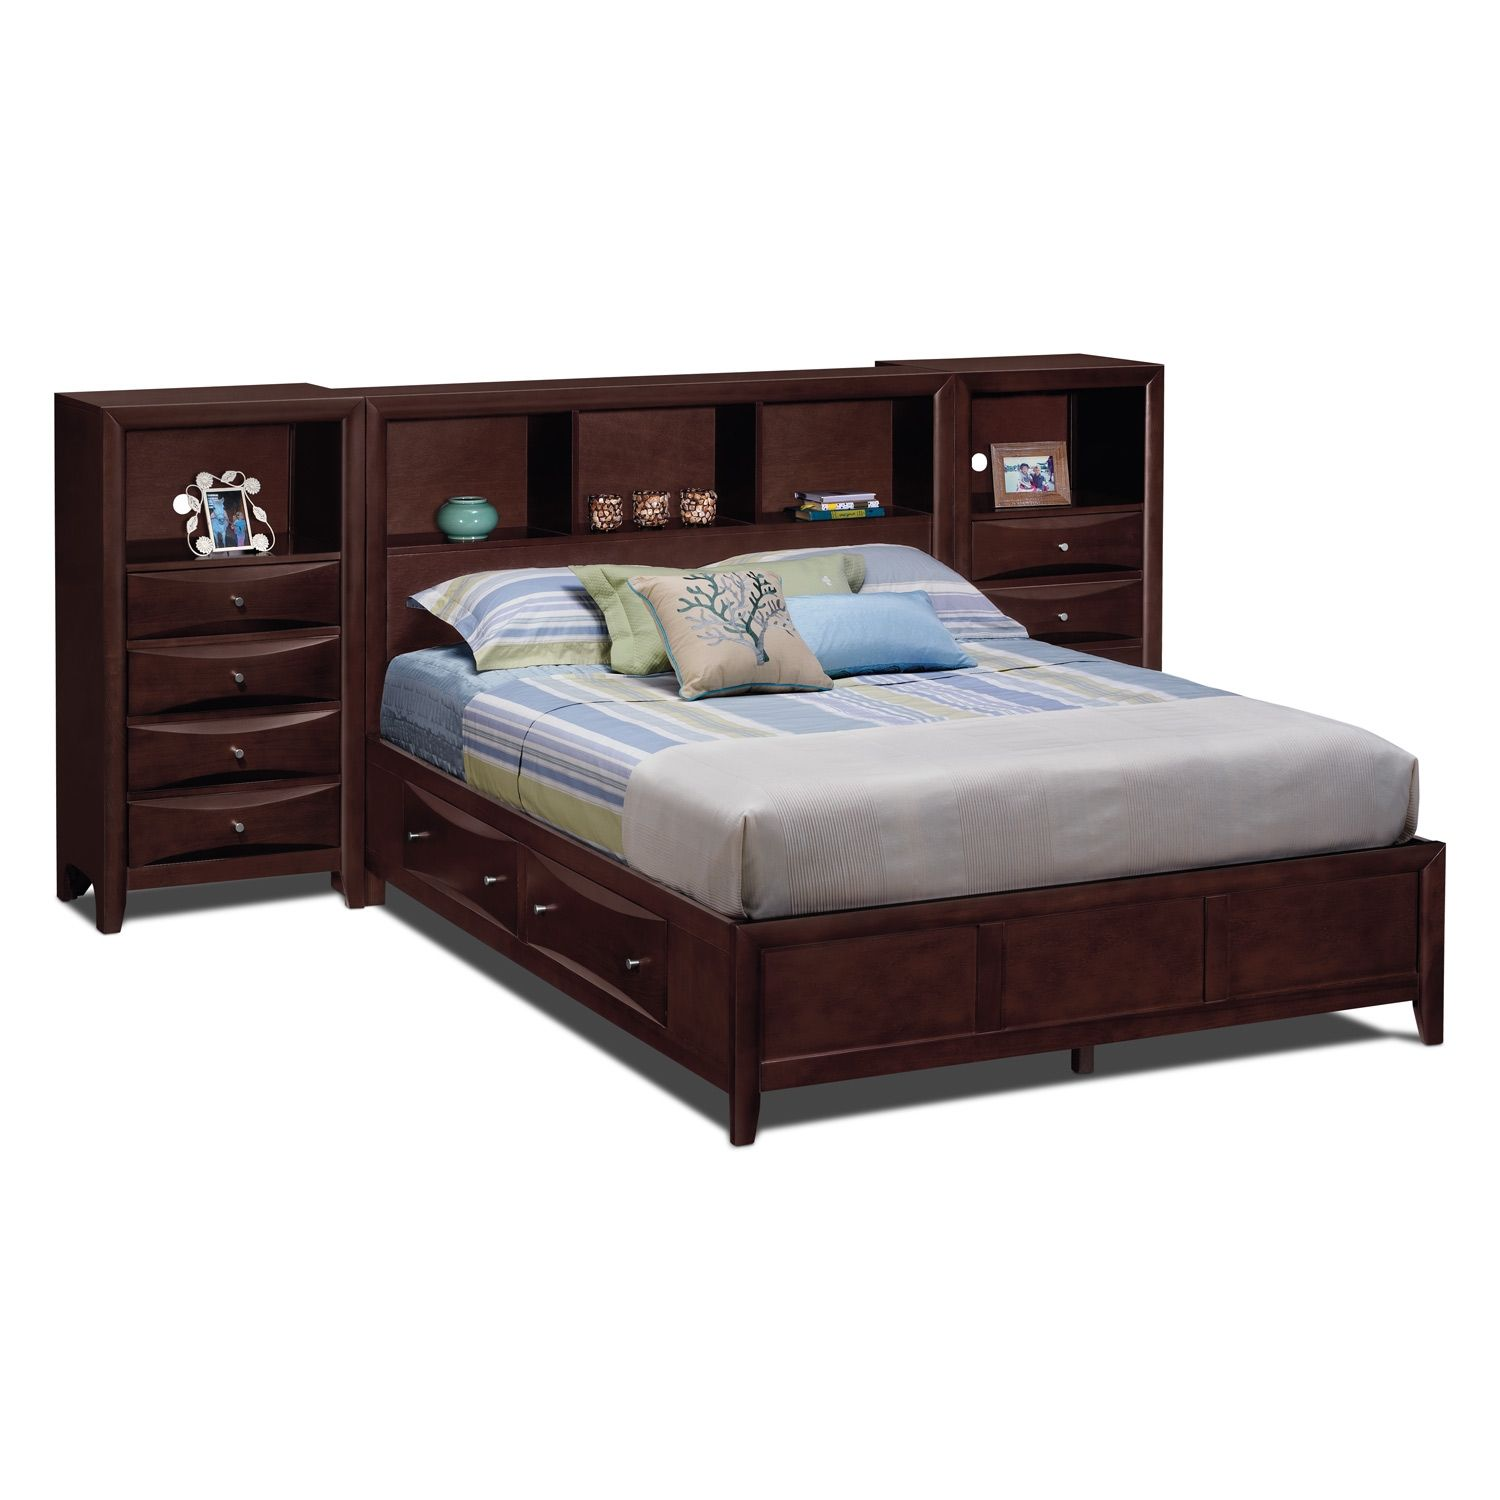 Kensington Bedroom Queen Wall Bed With Piers